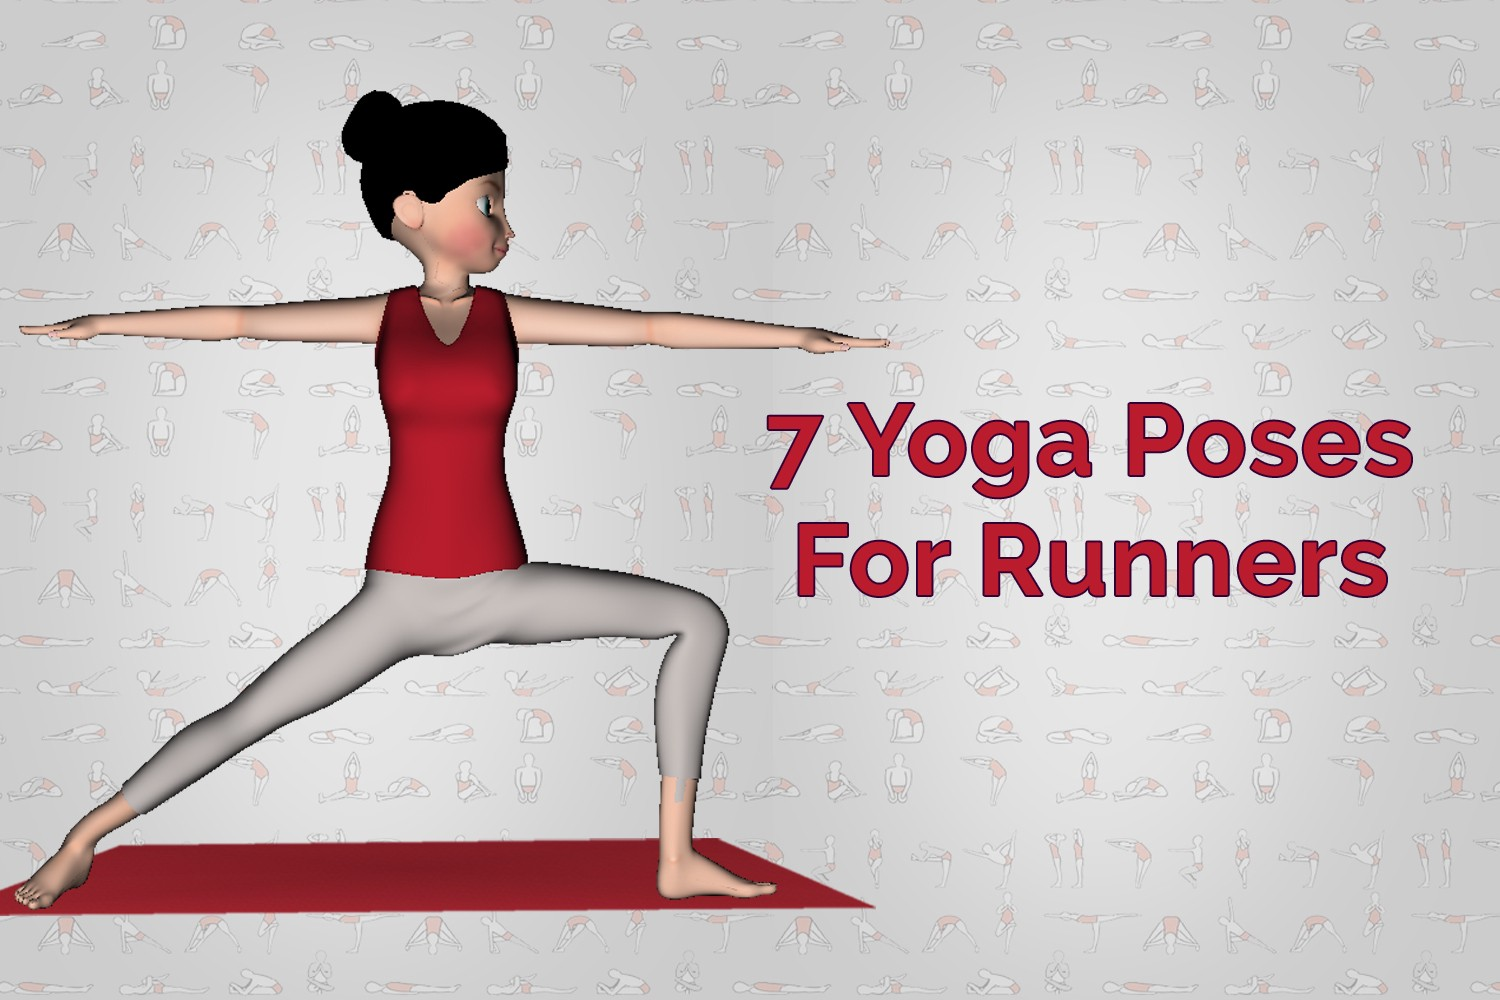 7 Yoga Poses For Runners Or Marathon Lovers By 7pranayama App Medium